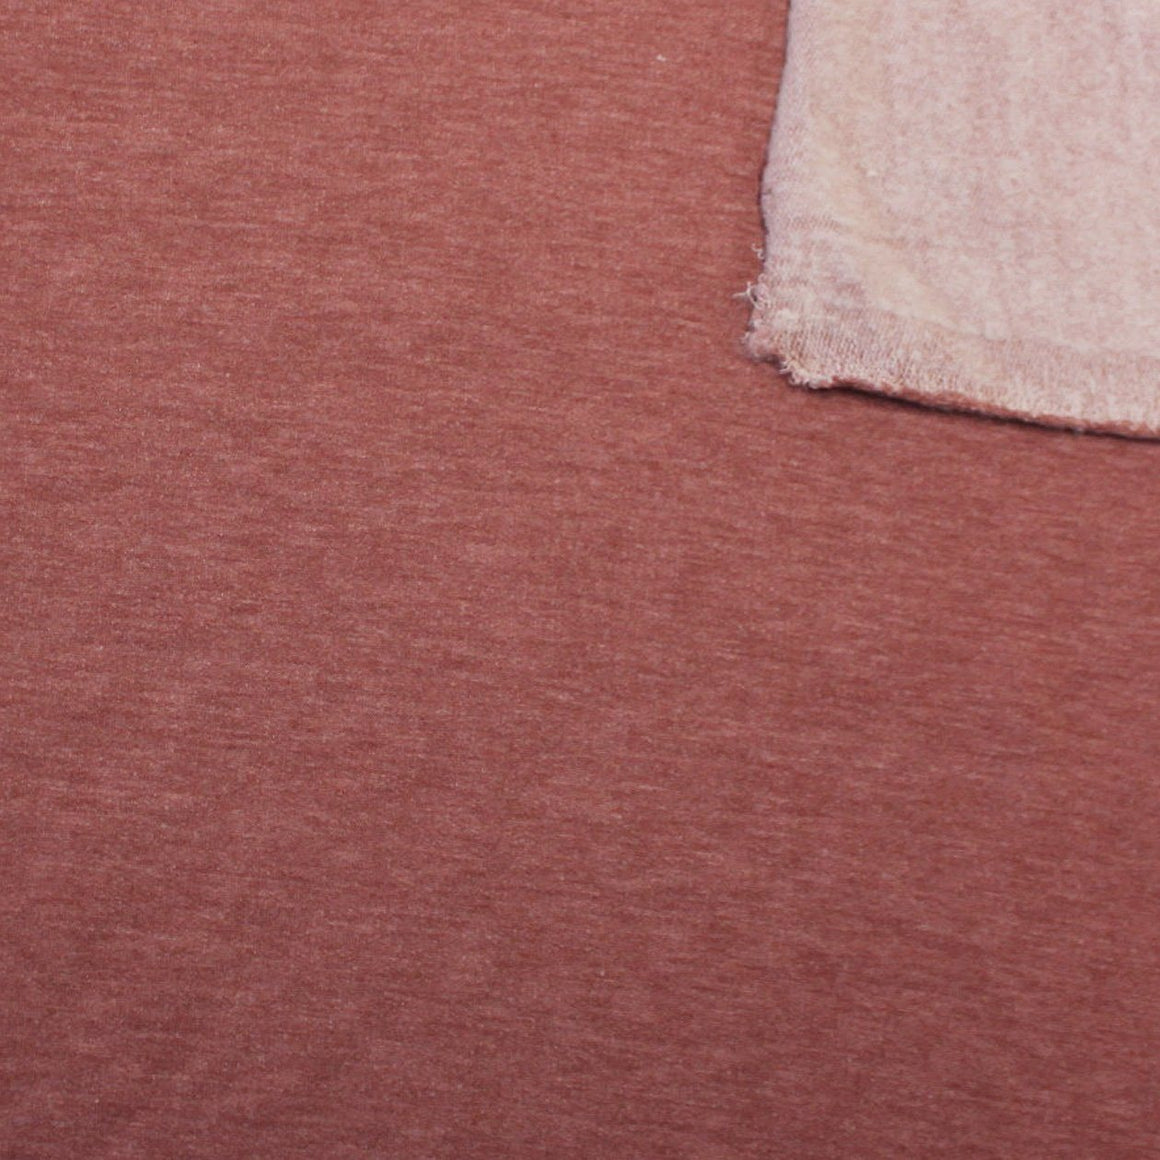 Light Burgundy Marsala French Terry Fleece Sweatshirt Knit Fabric, 1 Yard